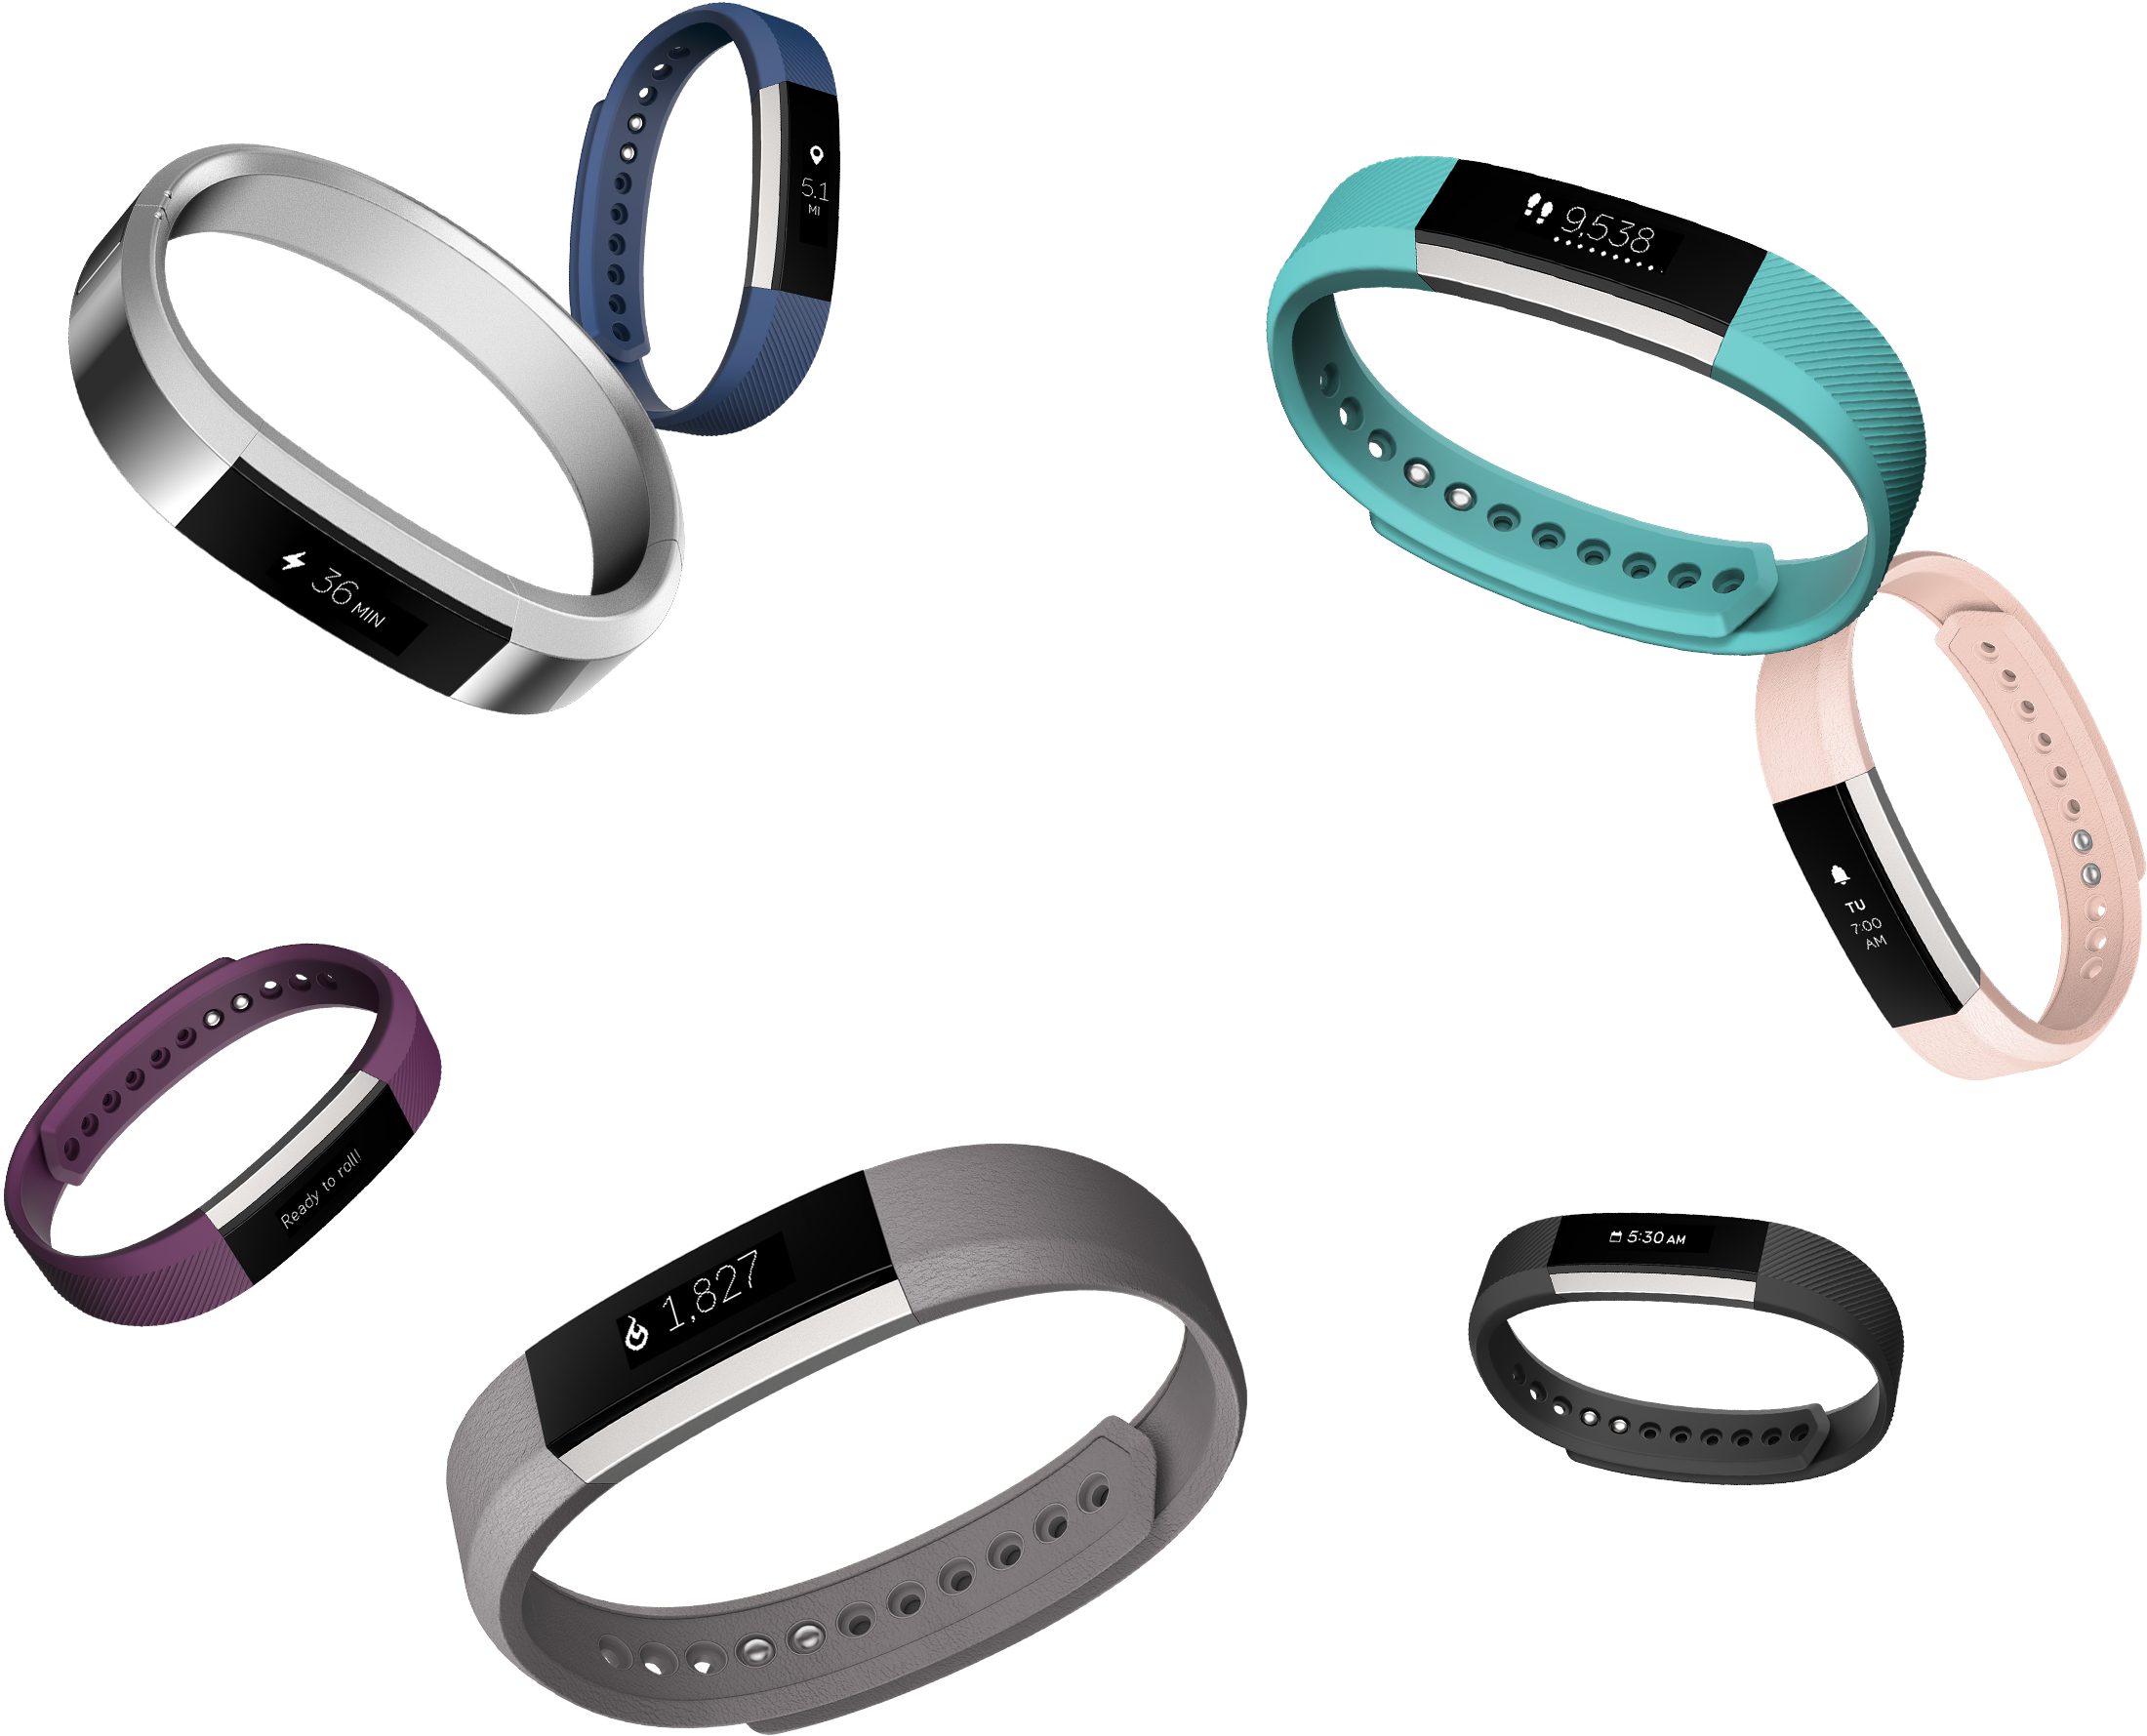 fitbit alta fitness wristband price in pakistan. Black Bedroom Furniture Sets. Home Design Ideas